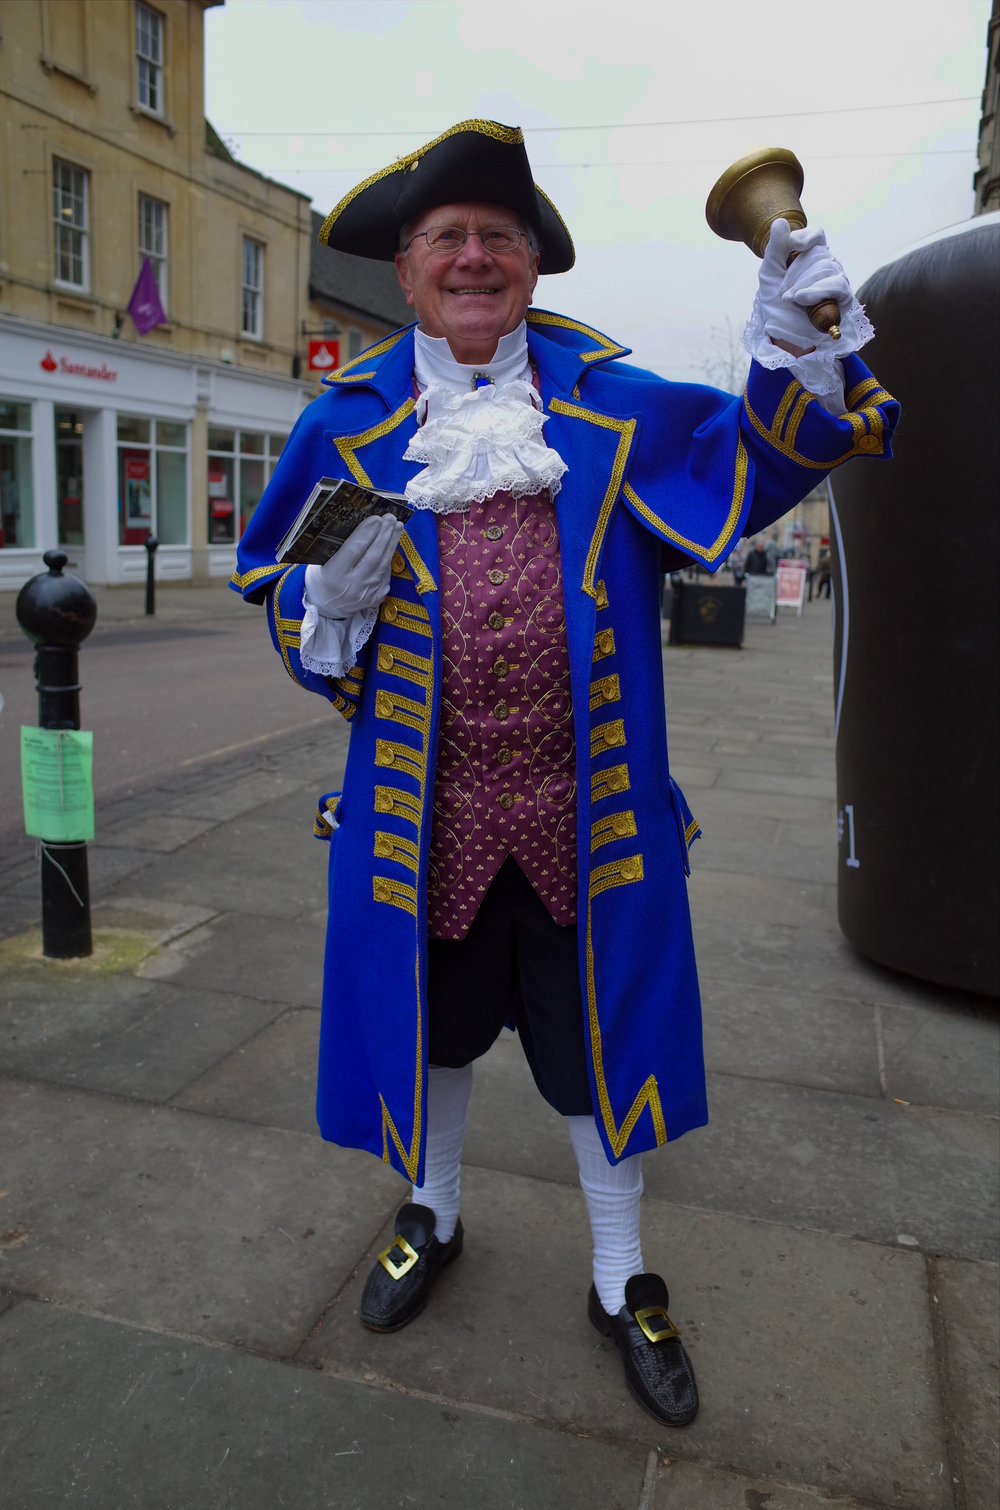 Oyez, oyez: The Ricoh GR makes an ideal pocket camera in case you happen upon the local Town Crier, as Mike did last week in Chippenham, Wiltshire. With its APS-C sensor, the Ricoh is a no-compromise shooter but lacks the impressive zoom and the versatility of the one-inch contenders.